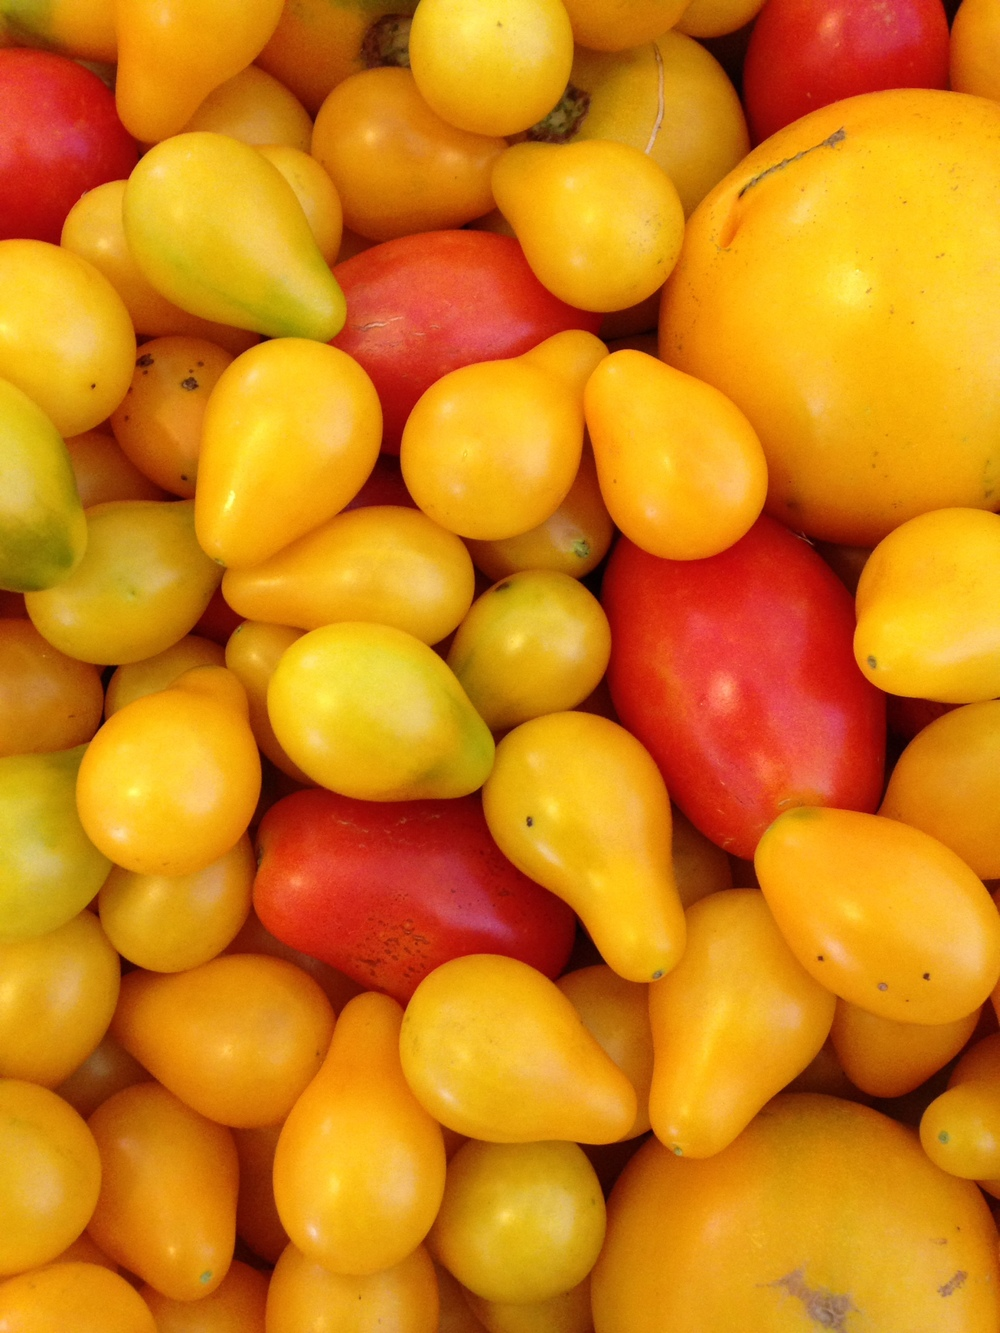 yellow red tomato.JPG